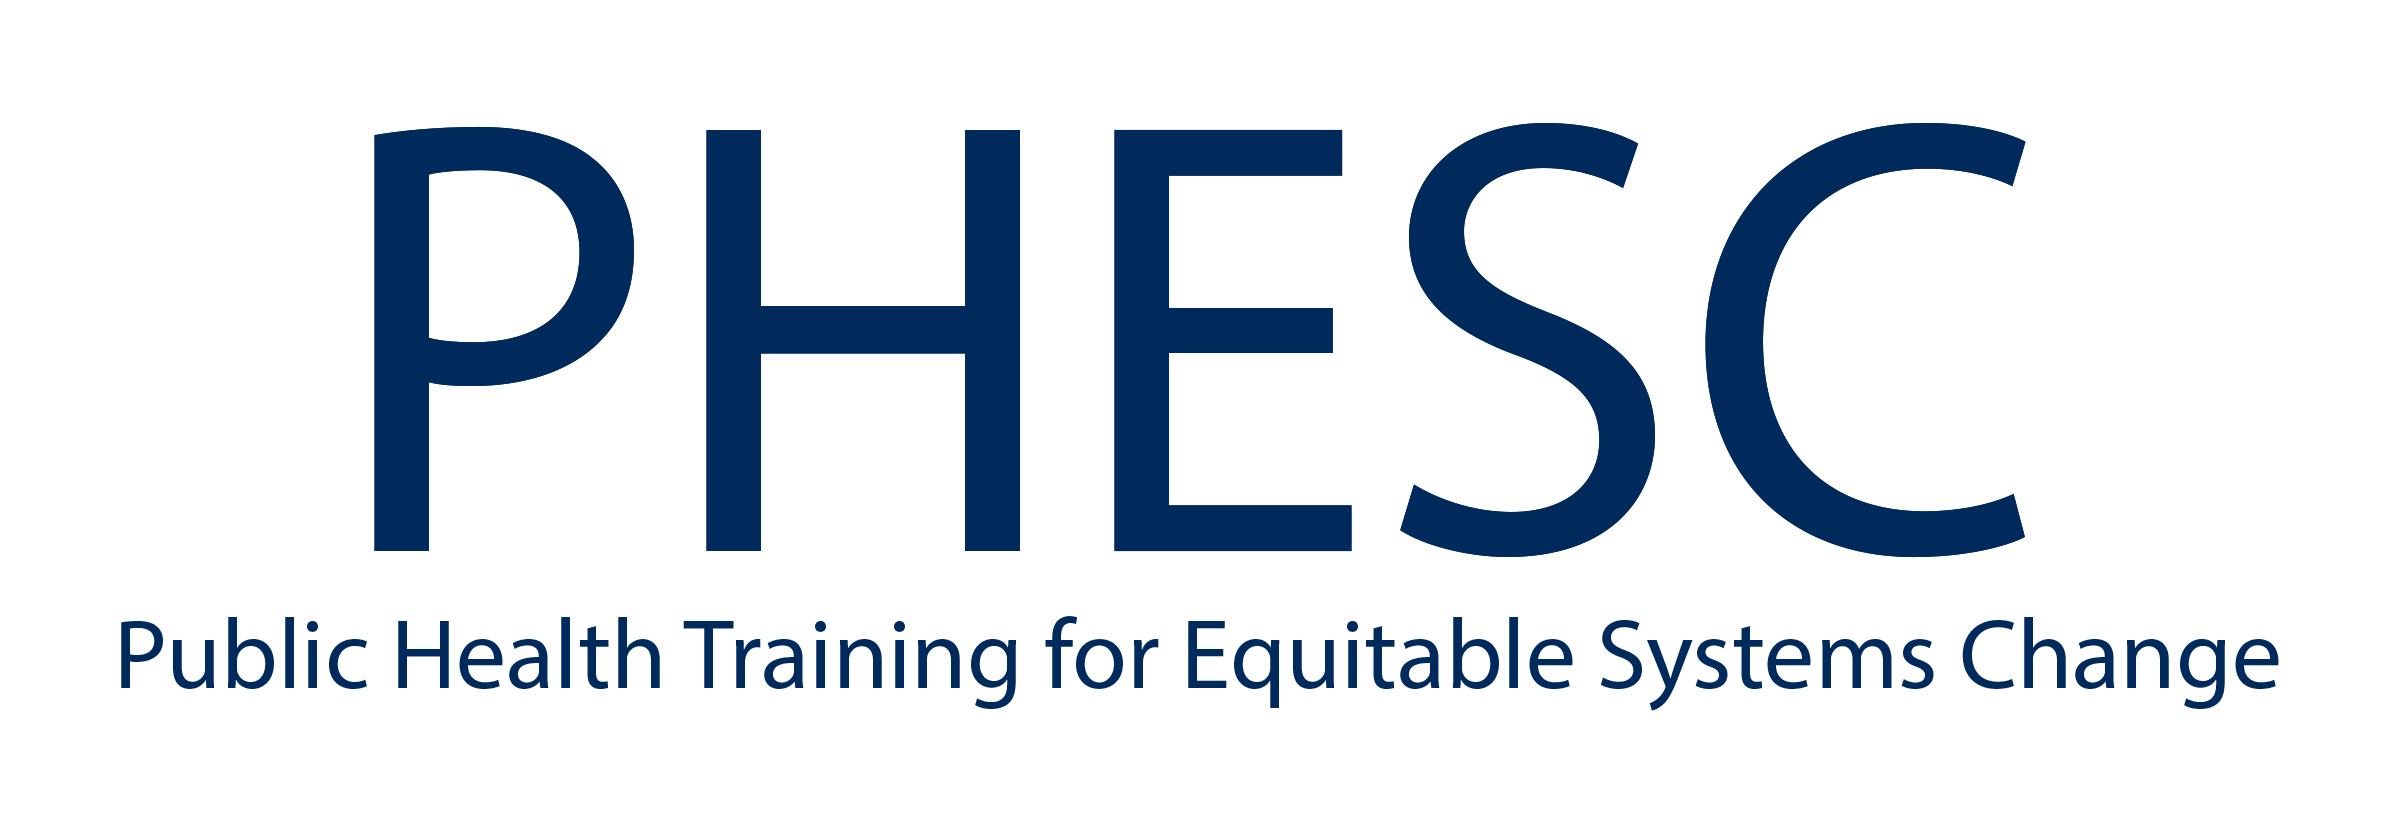 Public Health Training for Equitable Systems Change